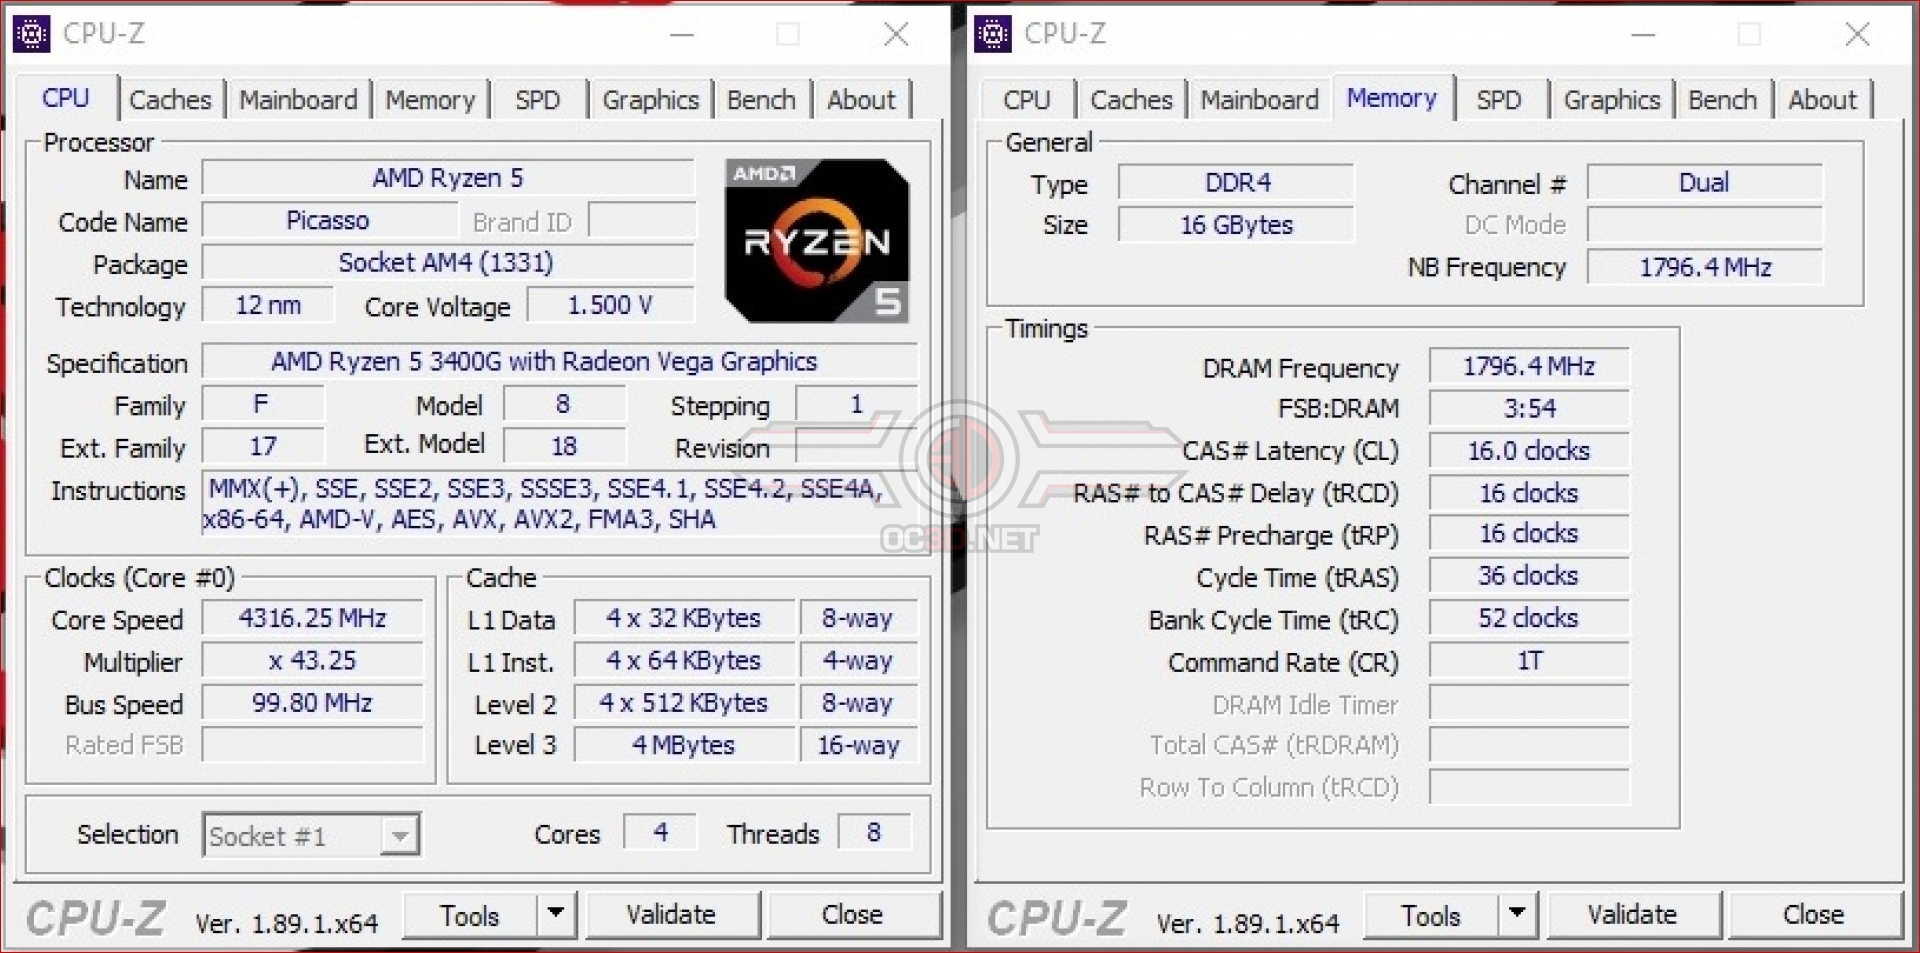 Amd Ryzen 5 3400g Review Test Setup And Overclocking Cpu Mainboard Oc3d Review